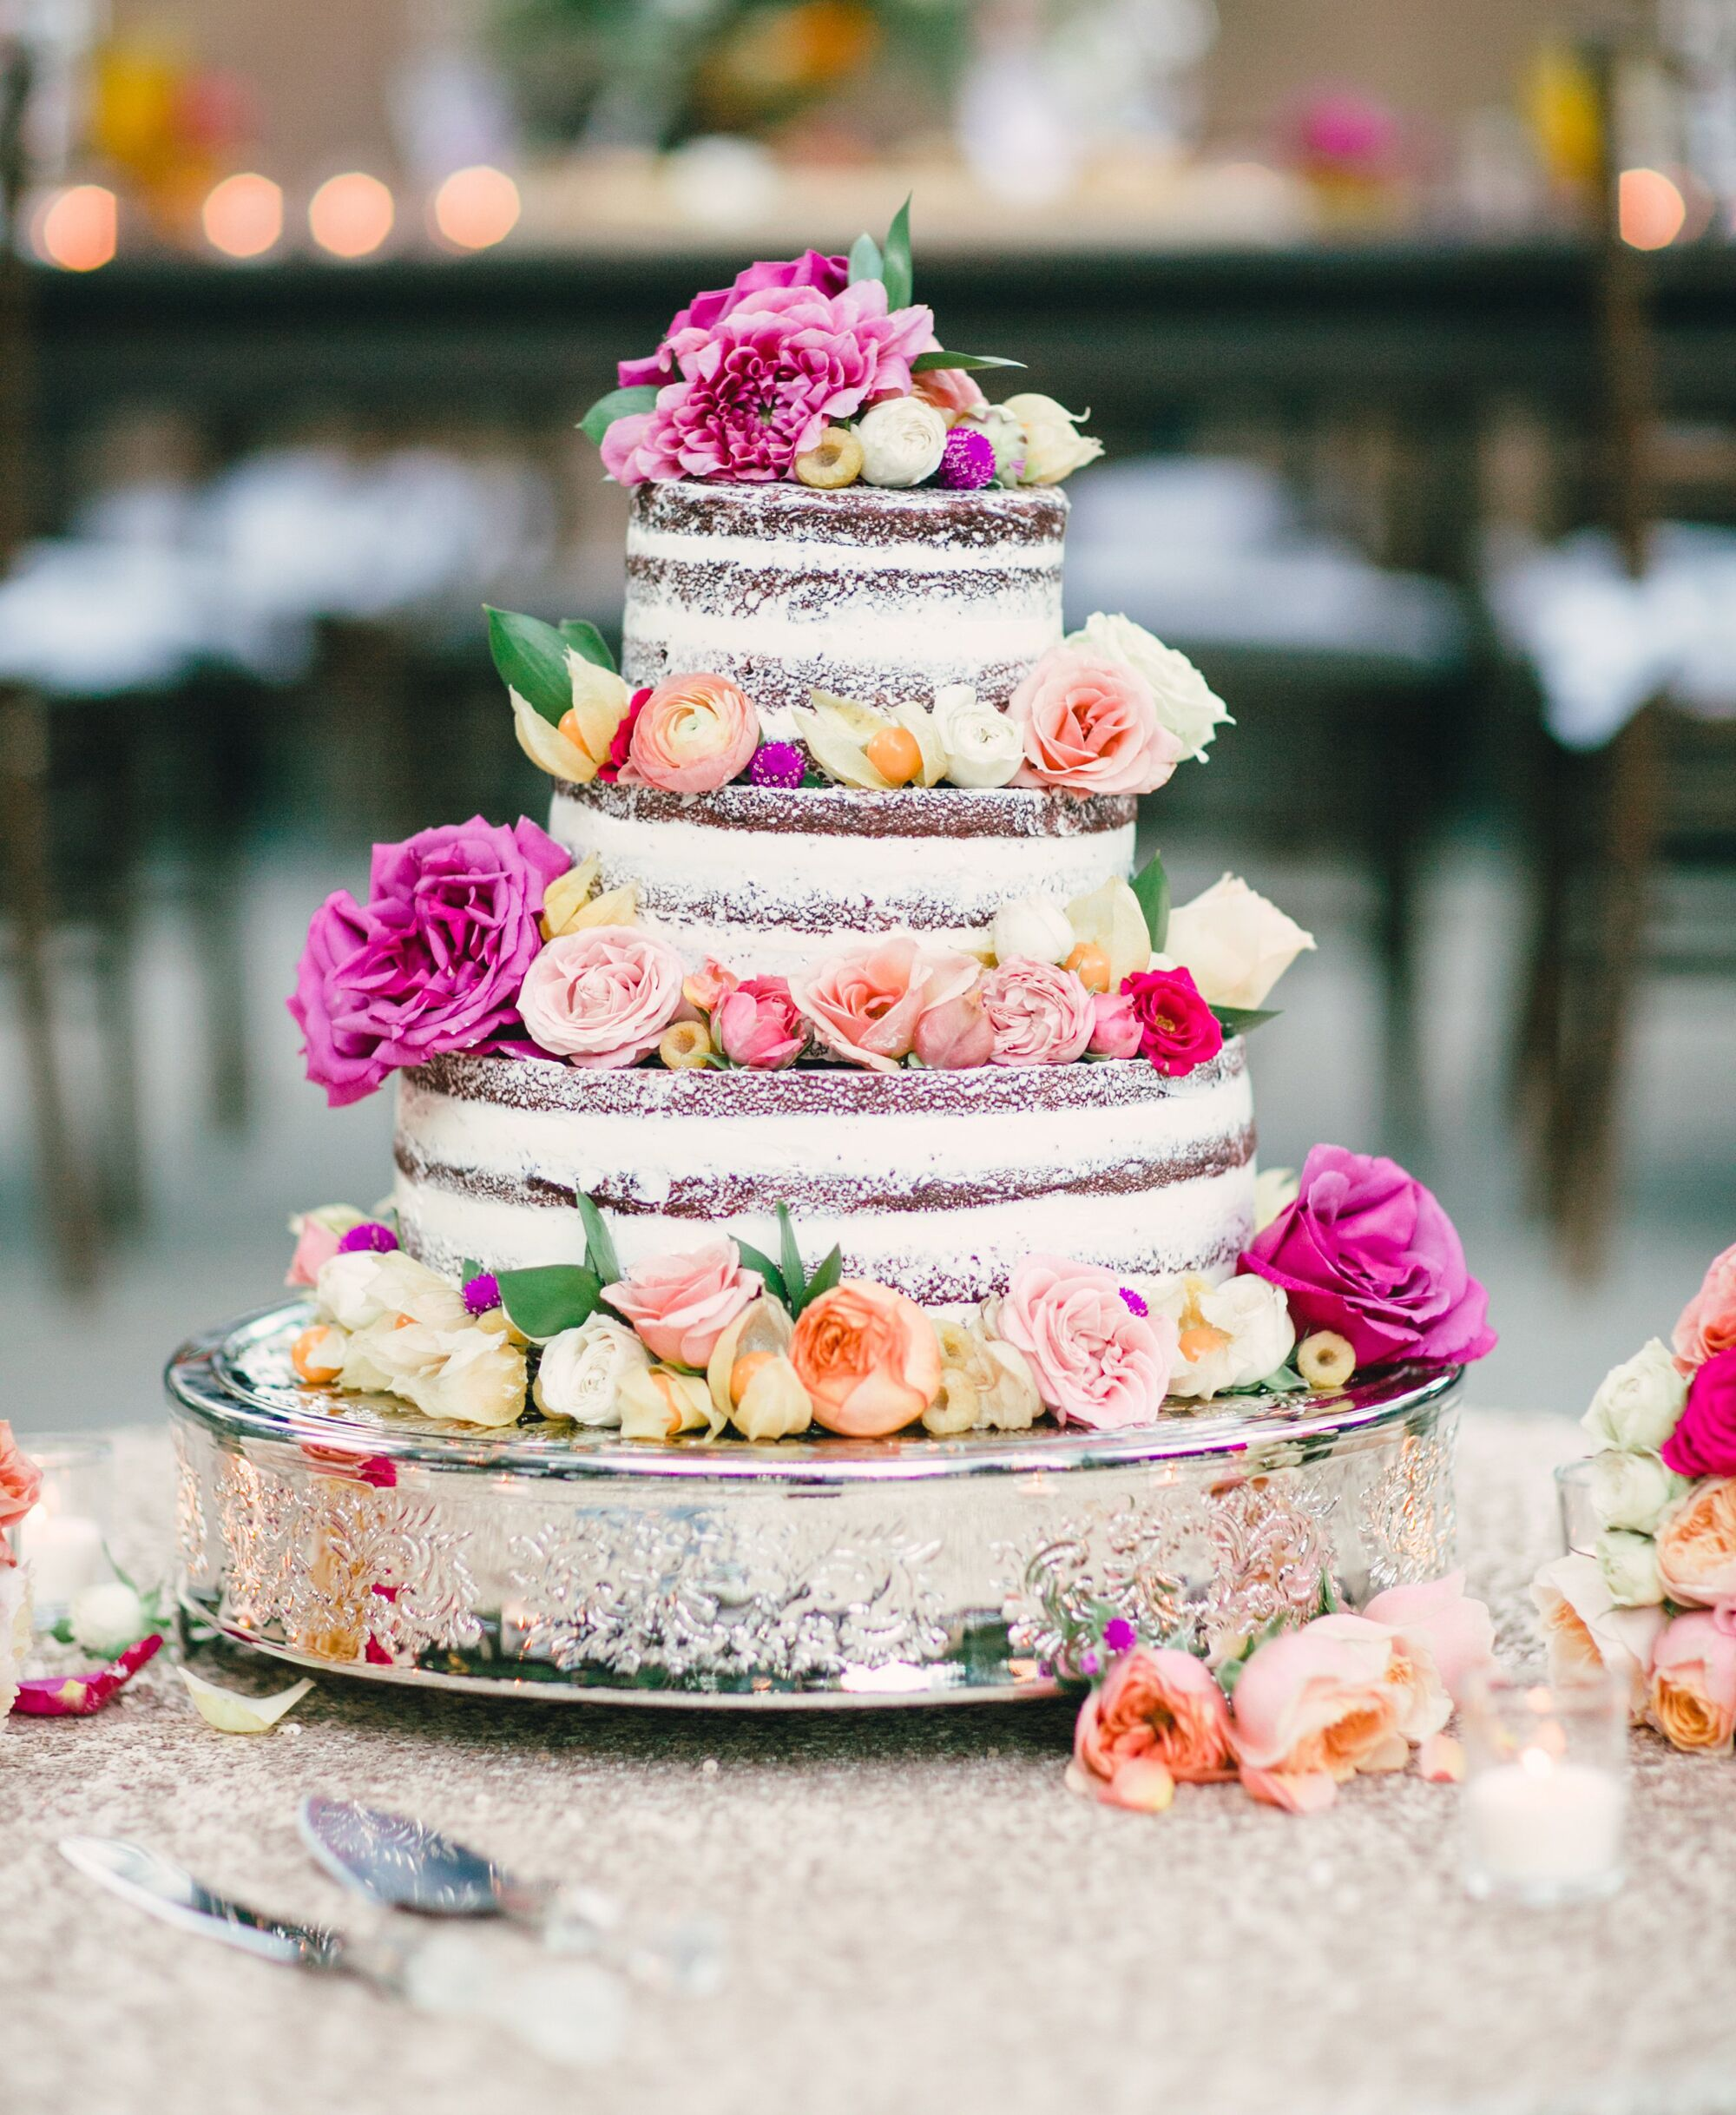 10 Naked Cakes You Have To See-4029